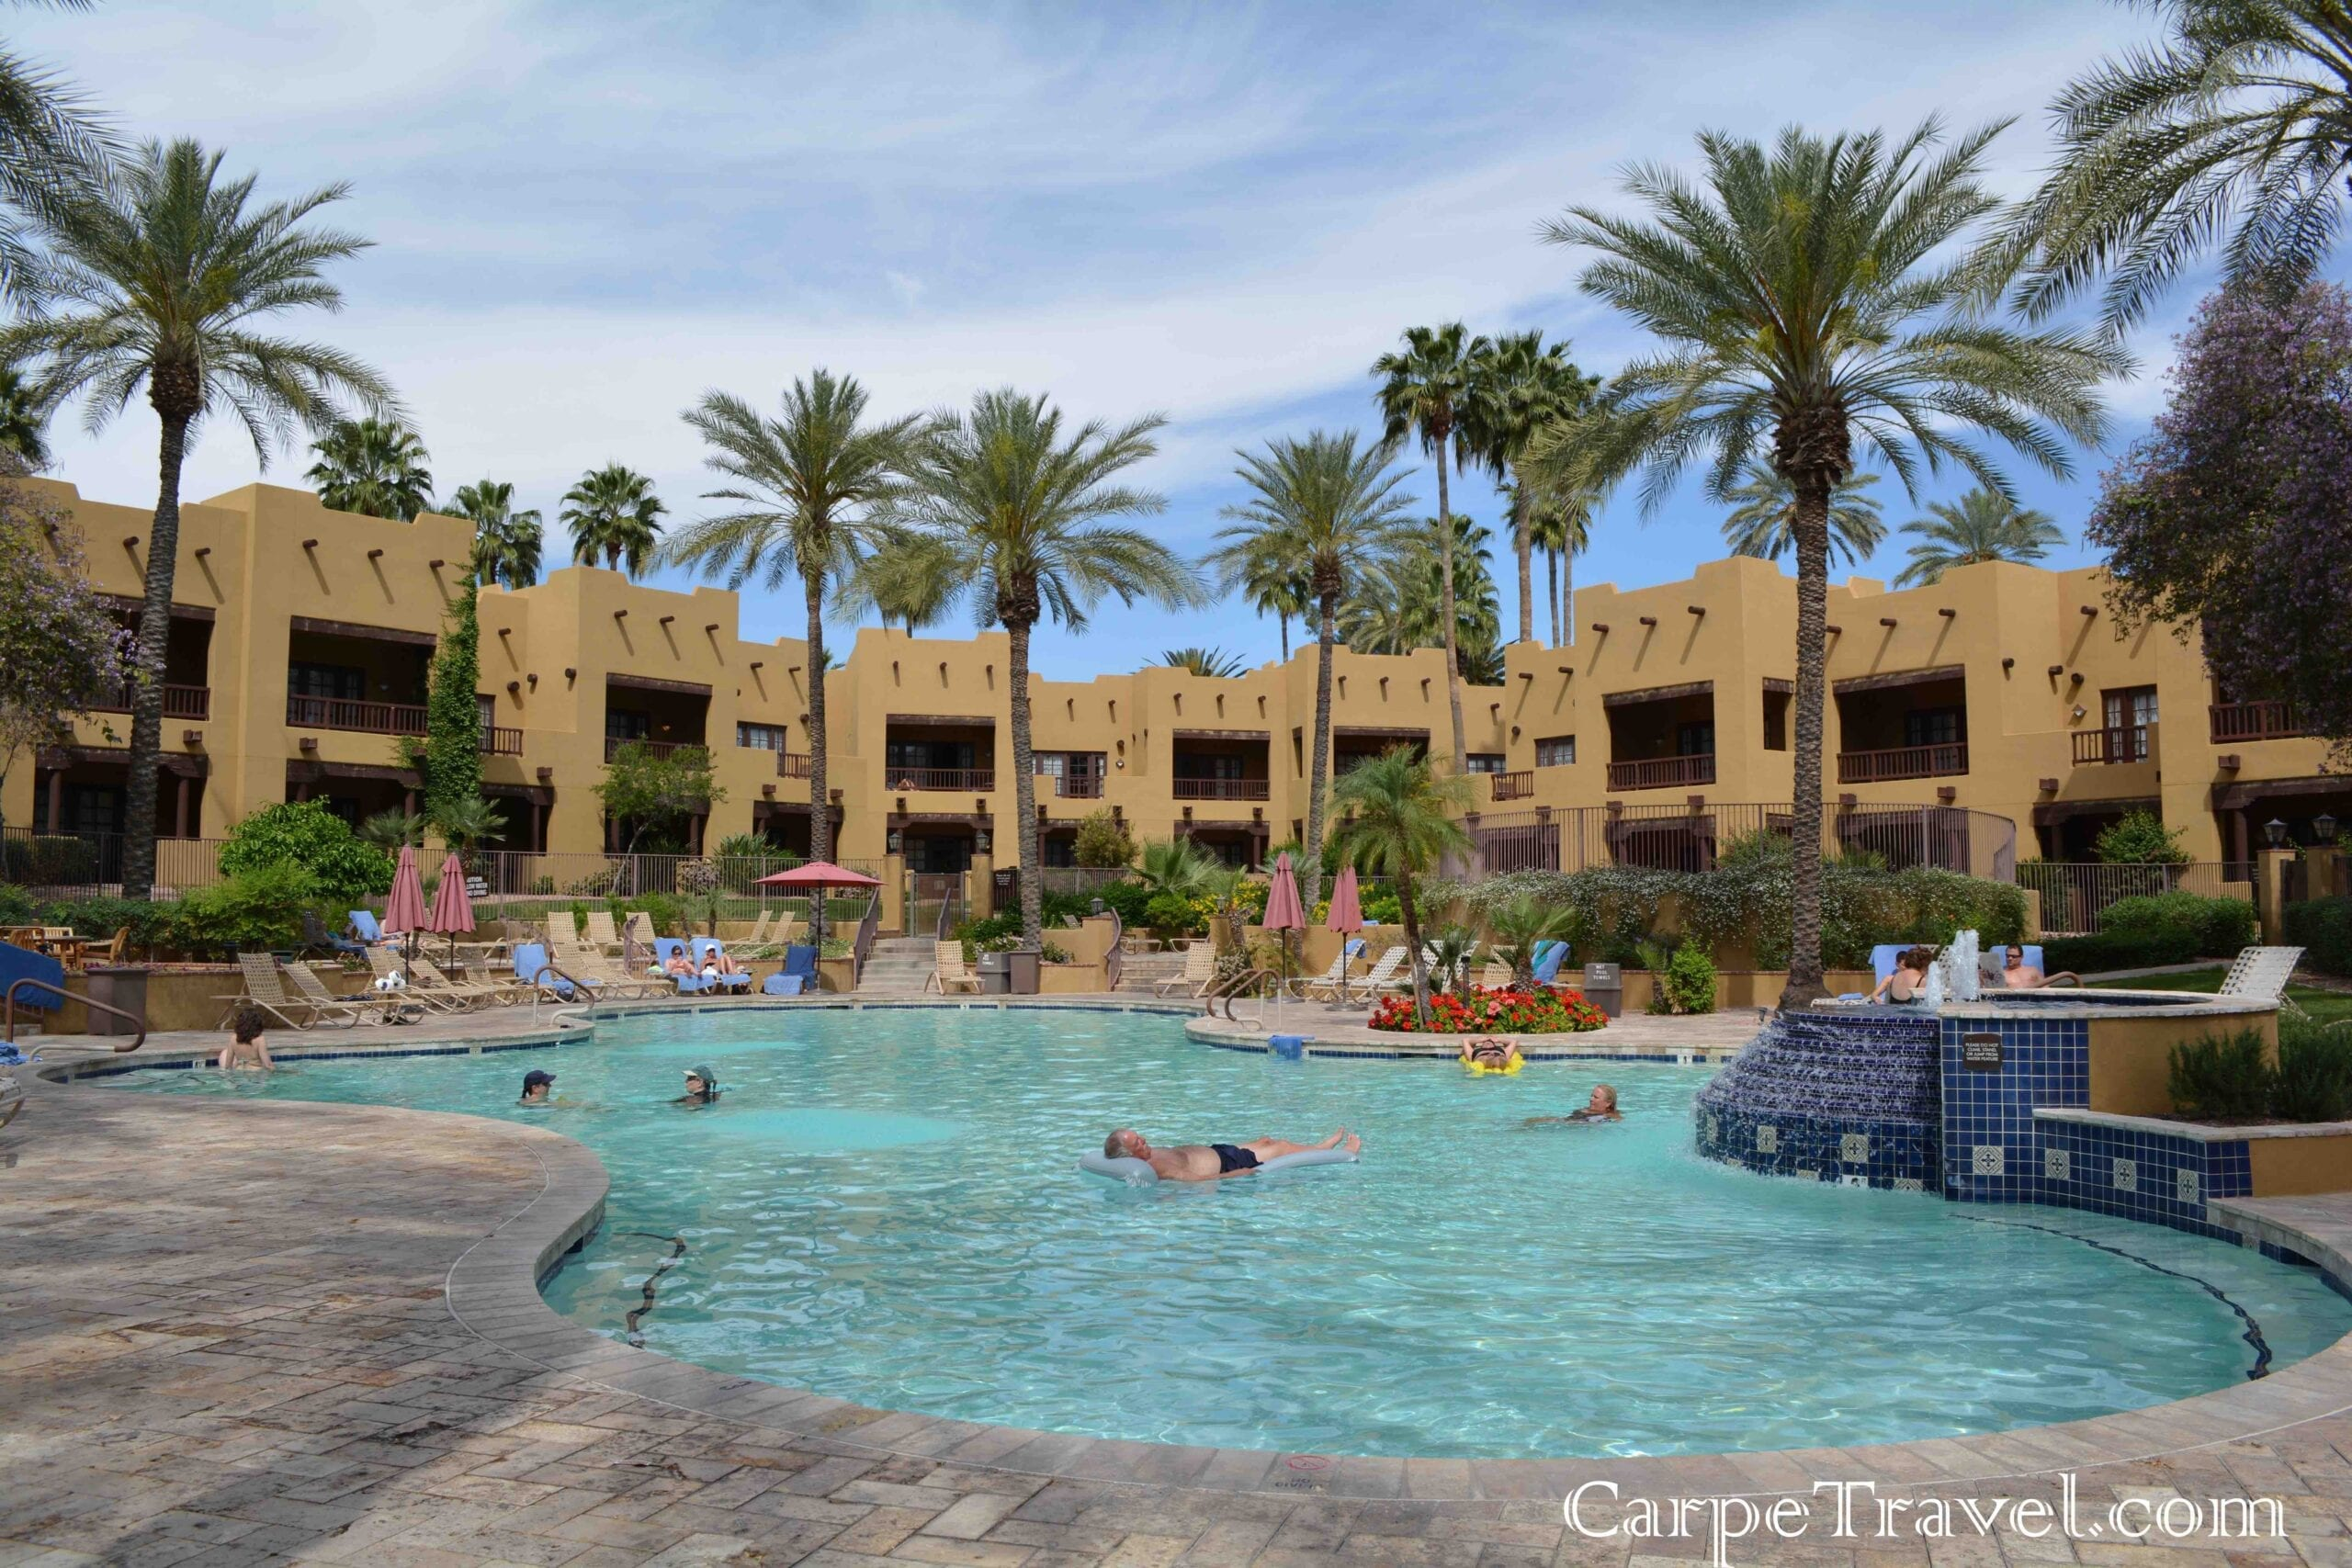 Check in the wigwam resort for Pictures of the pool